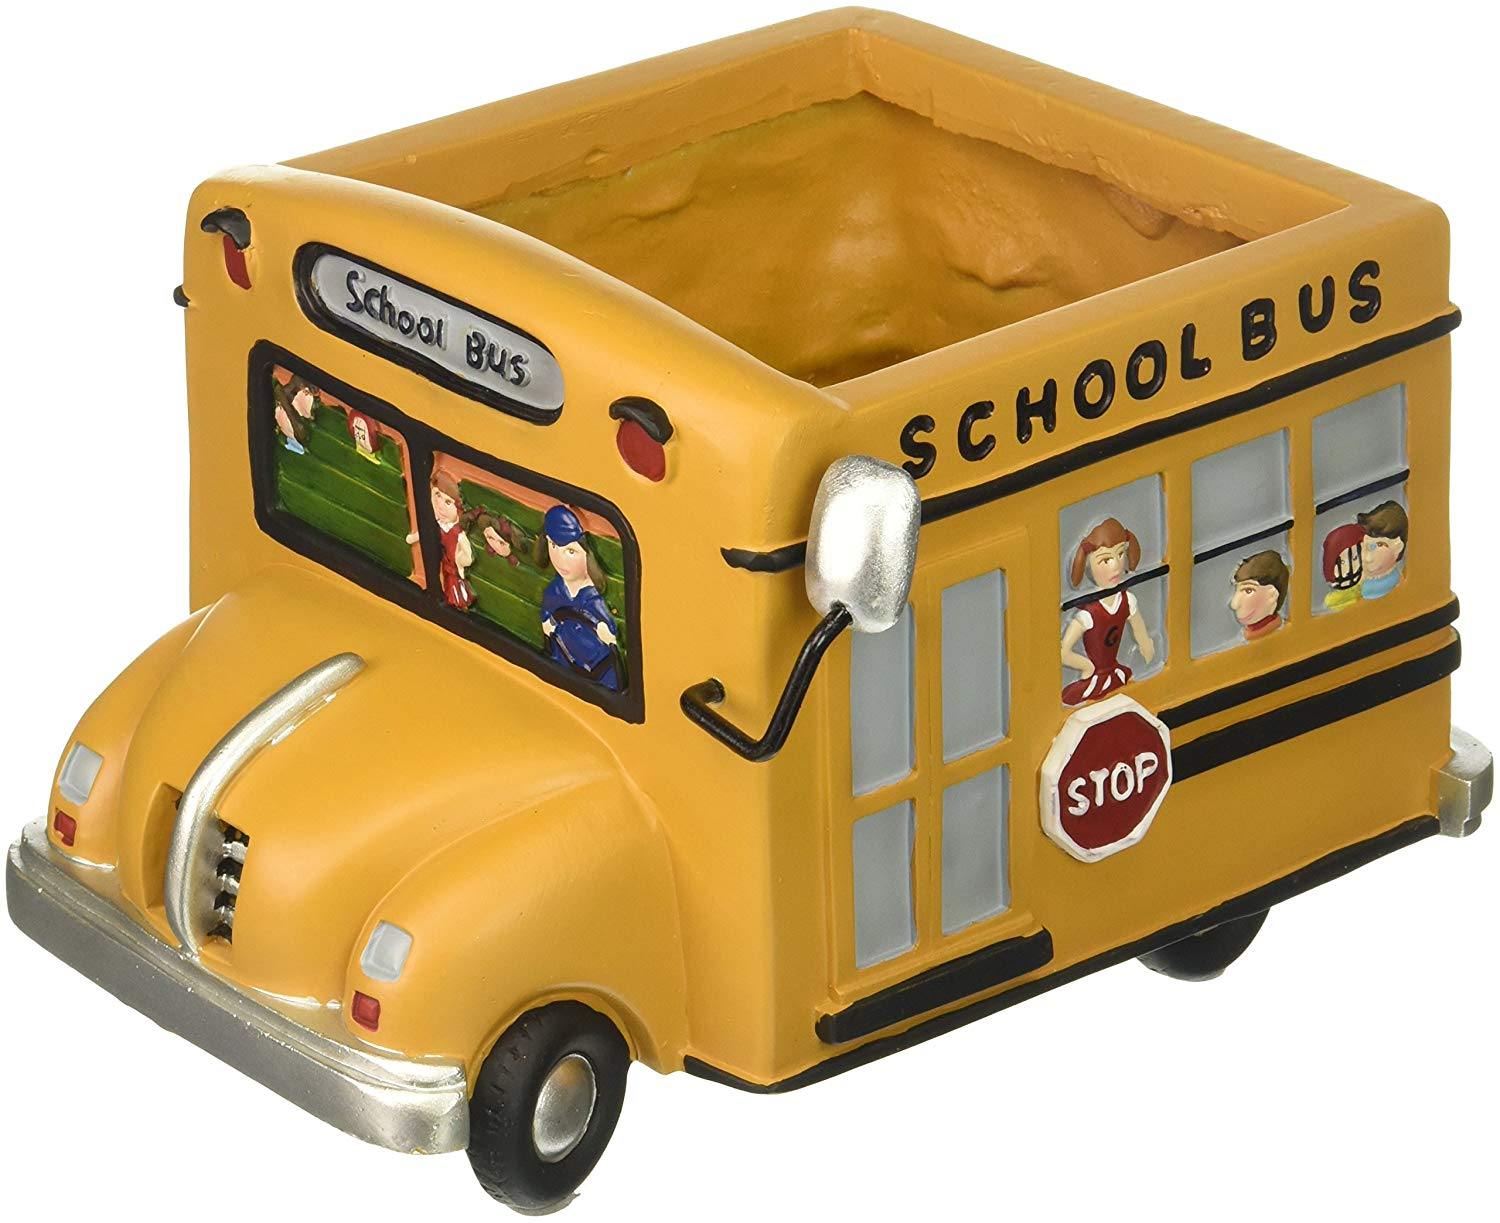 A school bus shaped planter - gifts for bus drivers